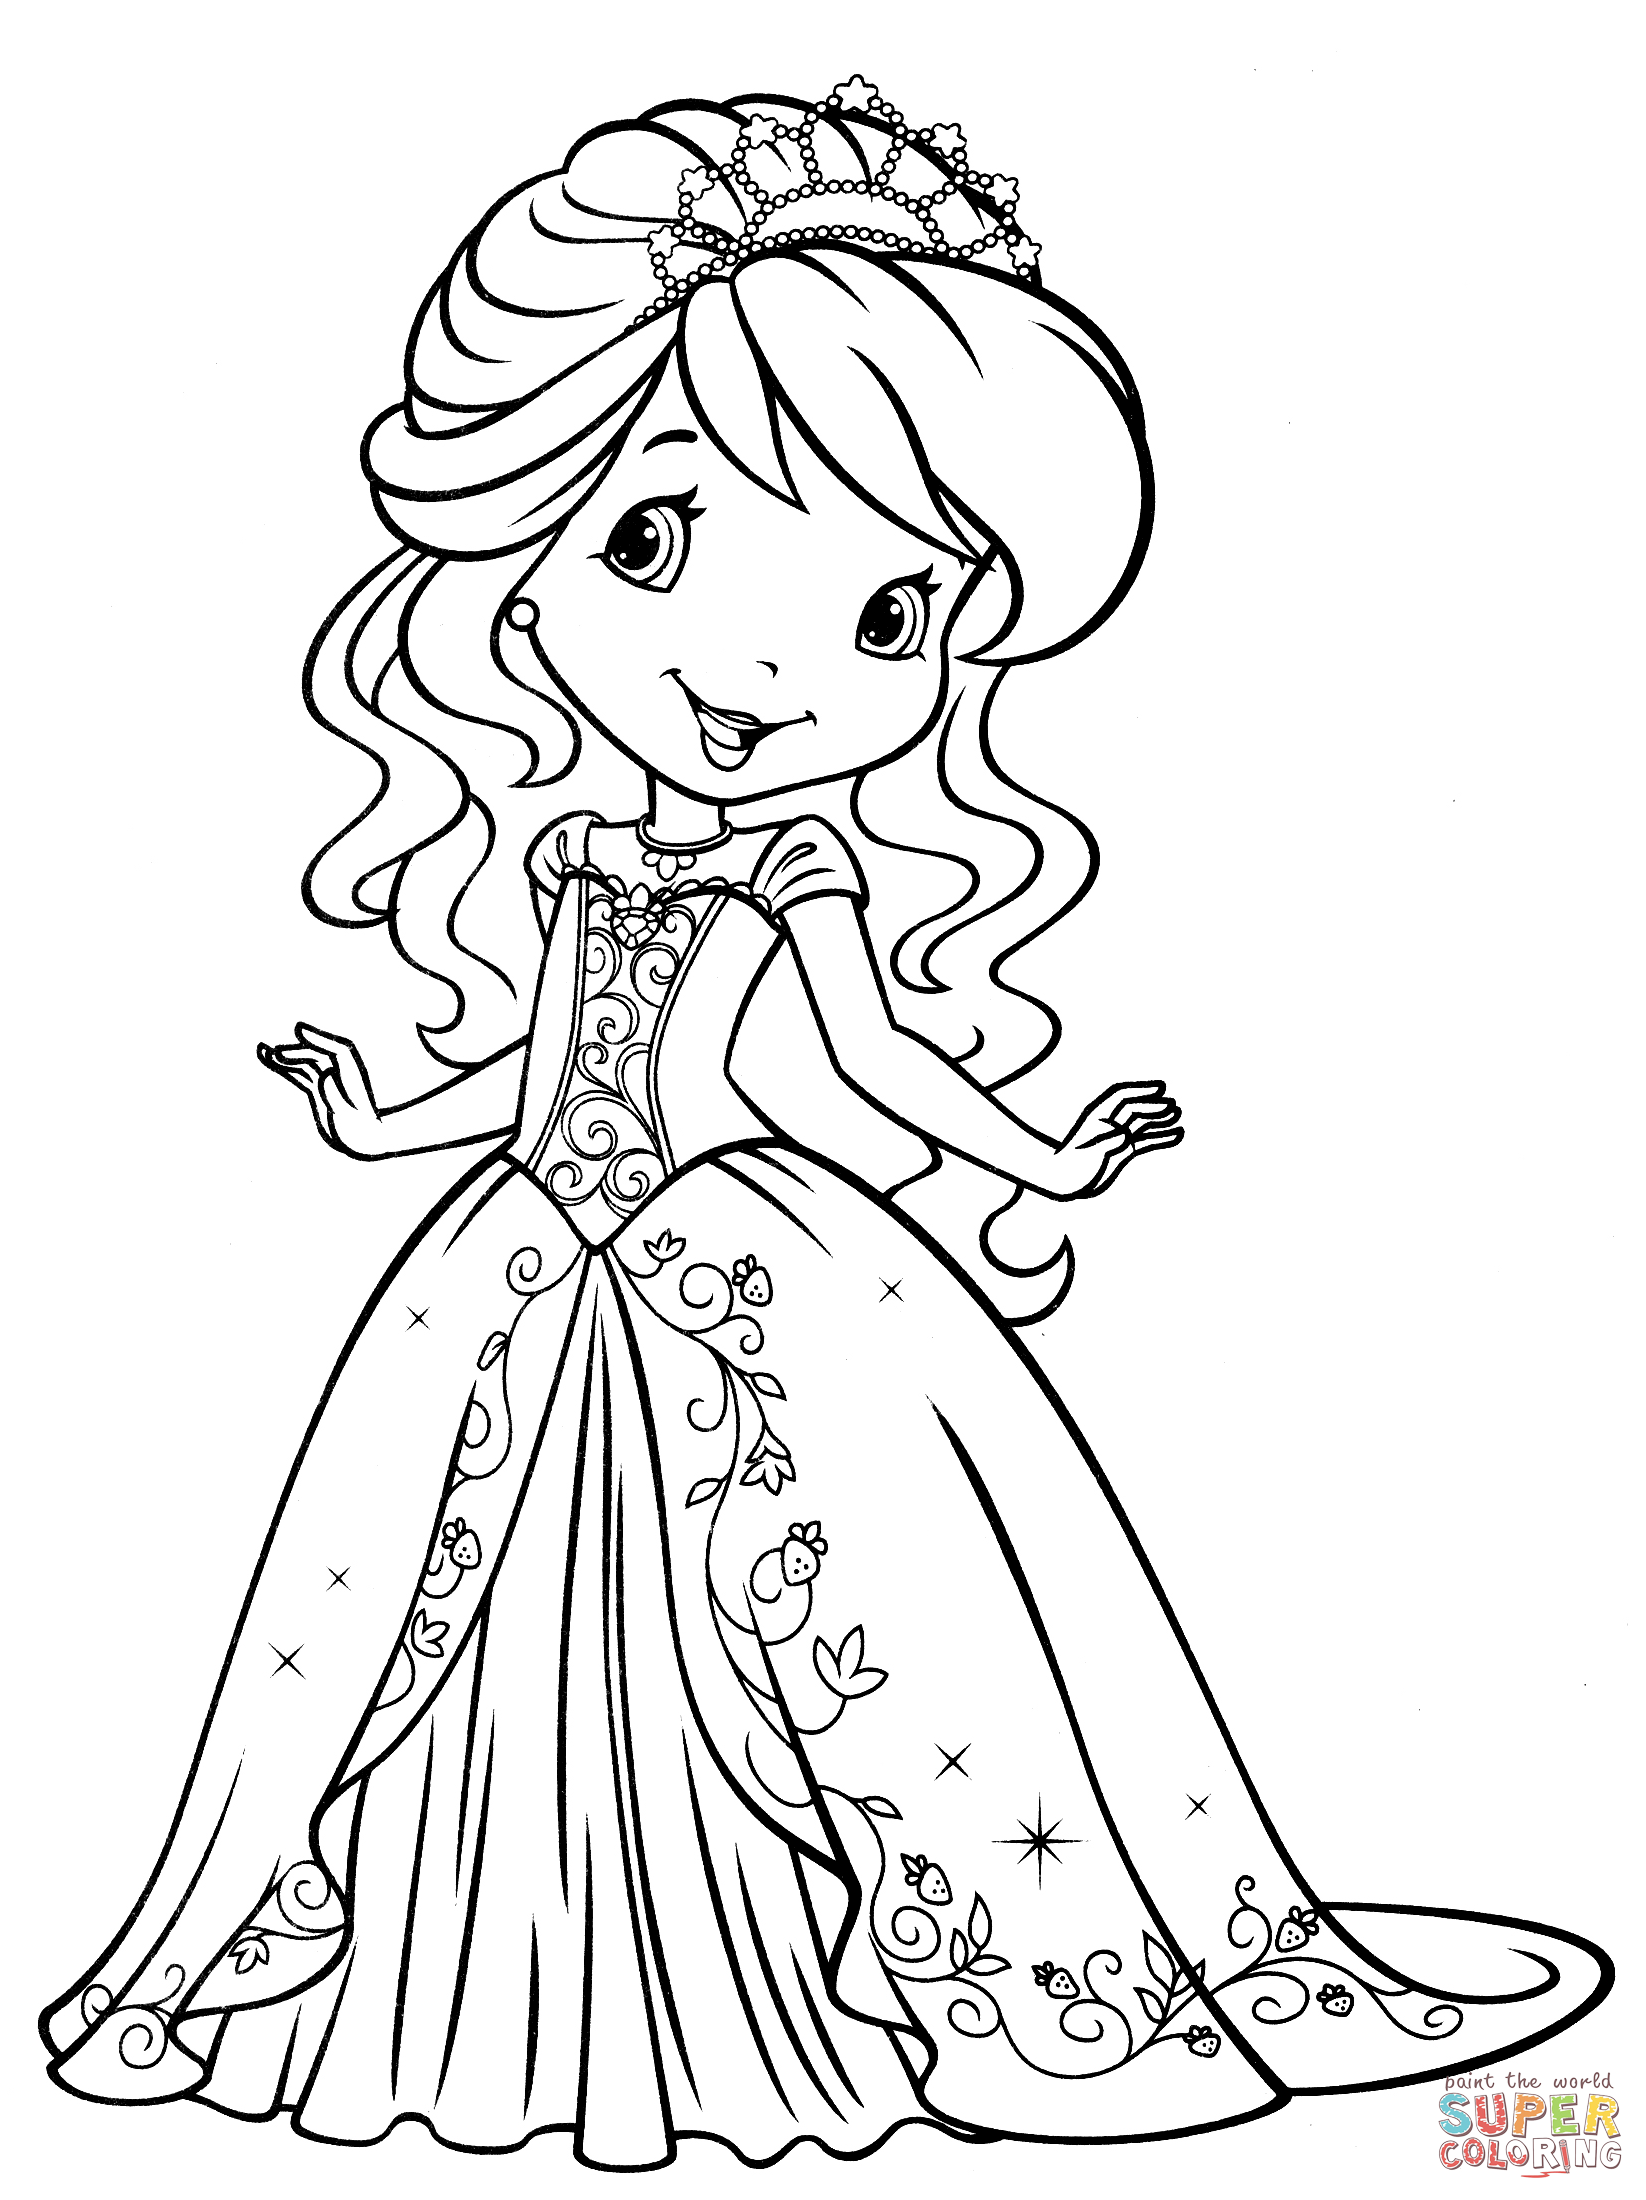 strawberry short coloring pages - photo#23